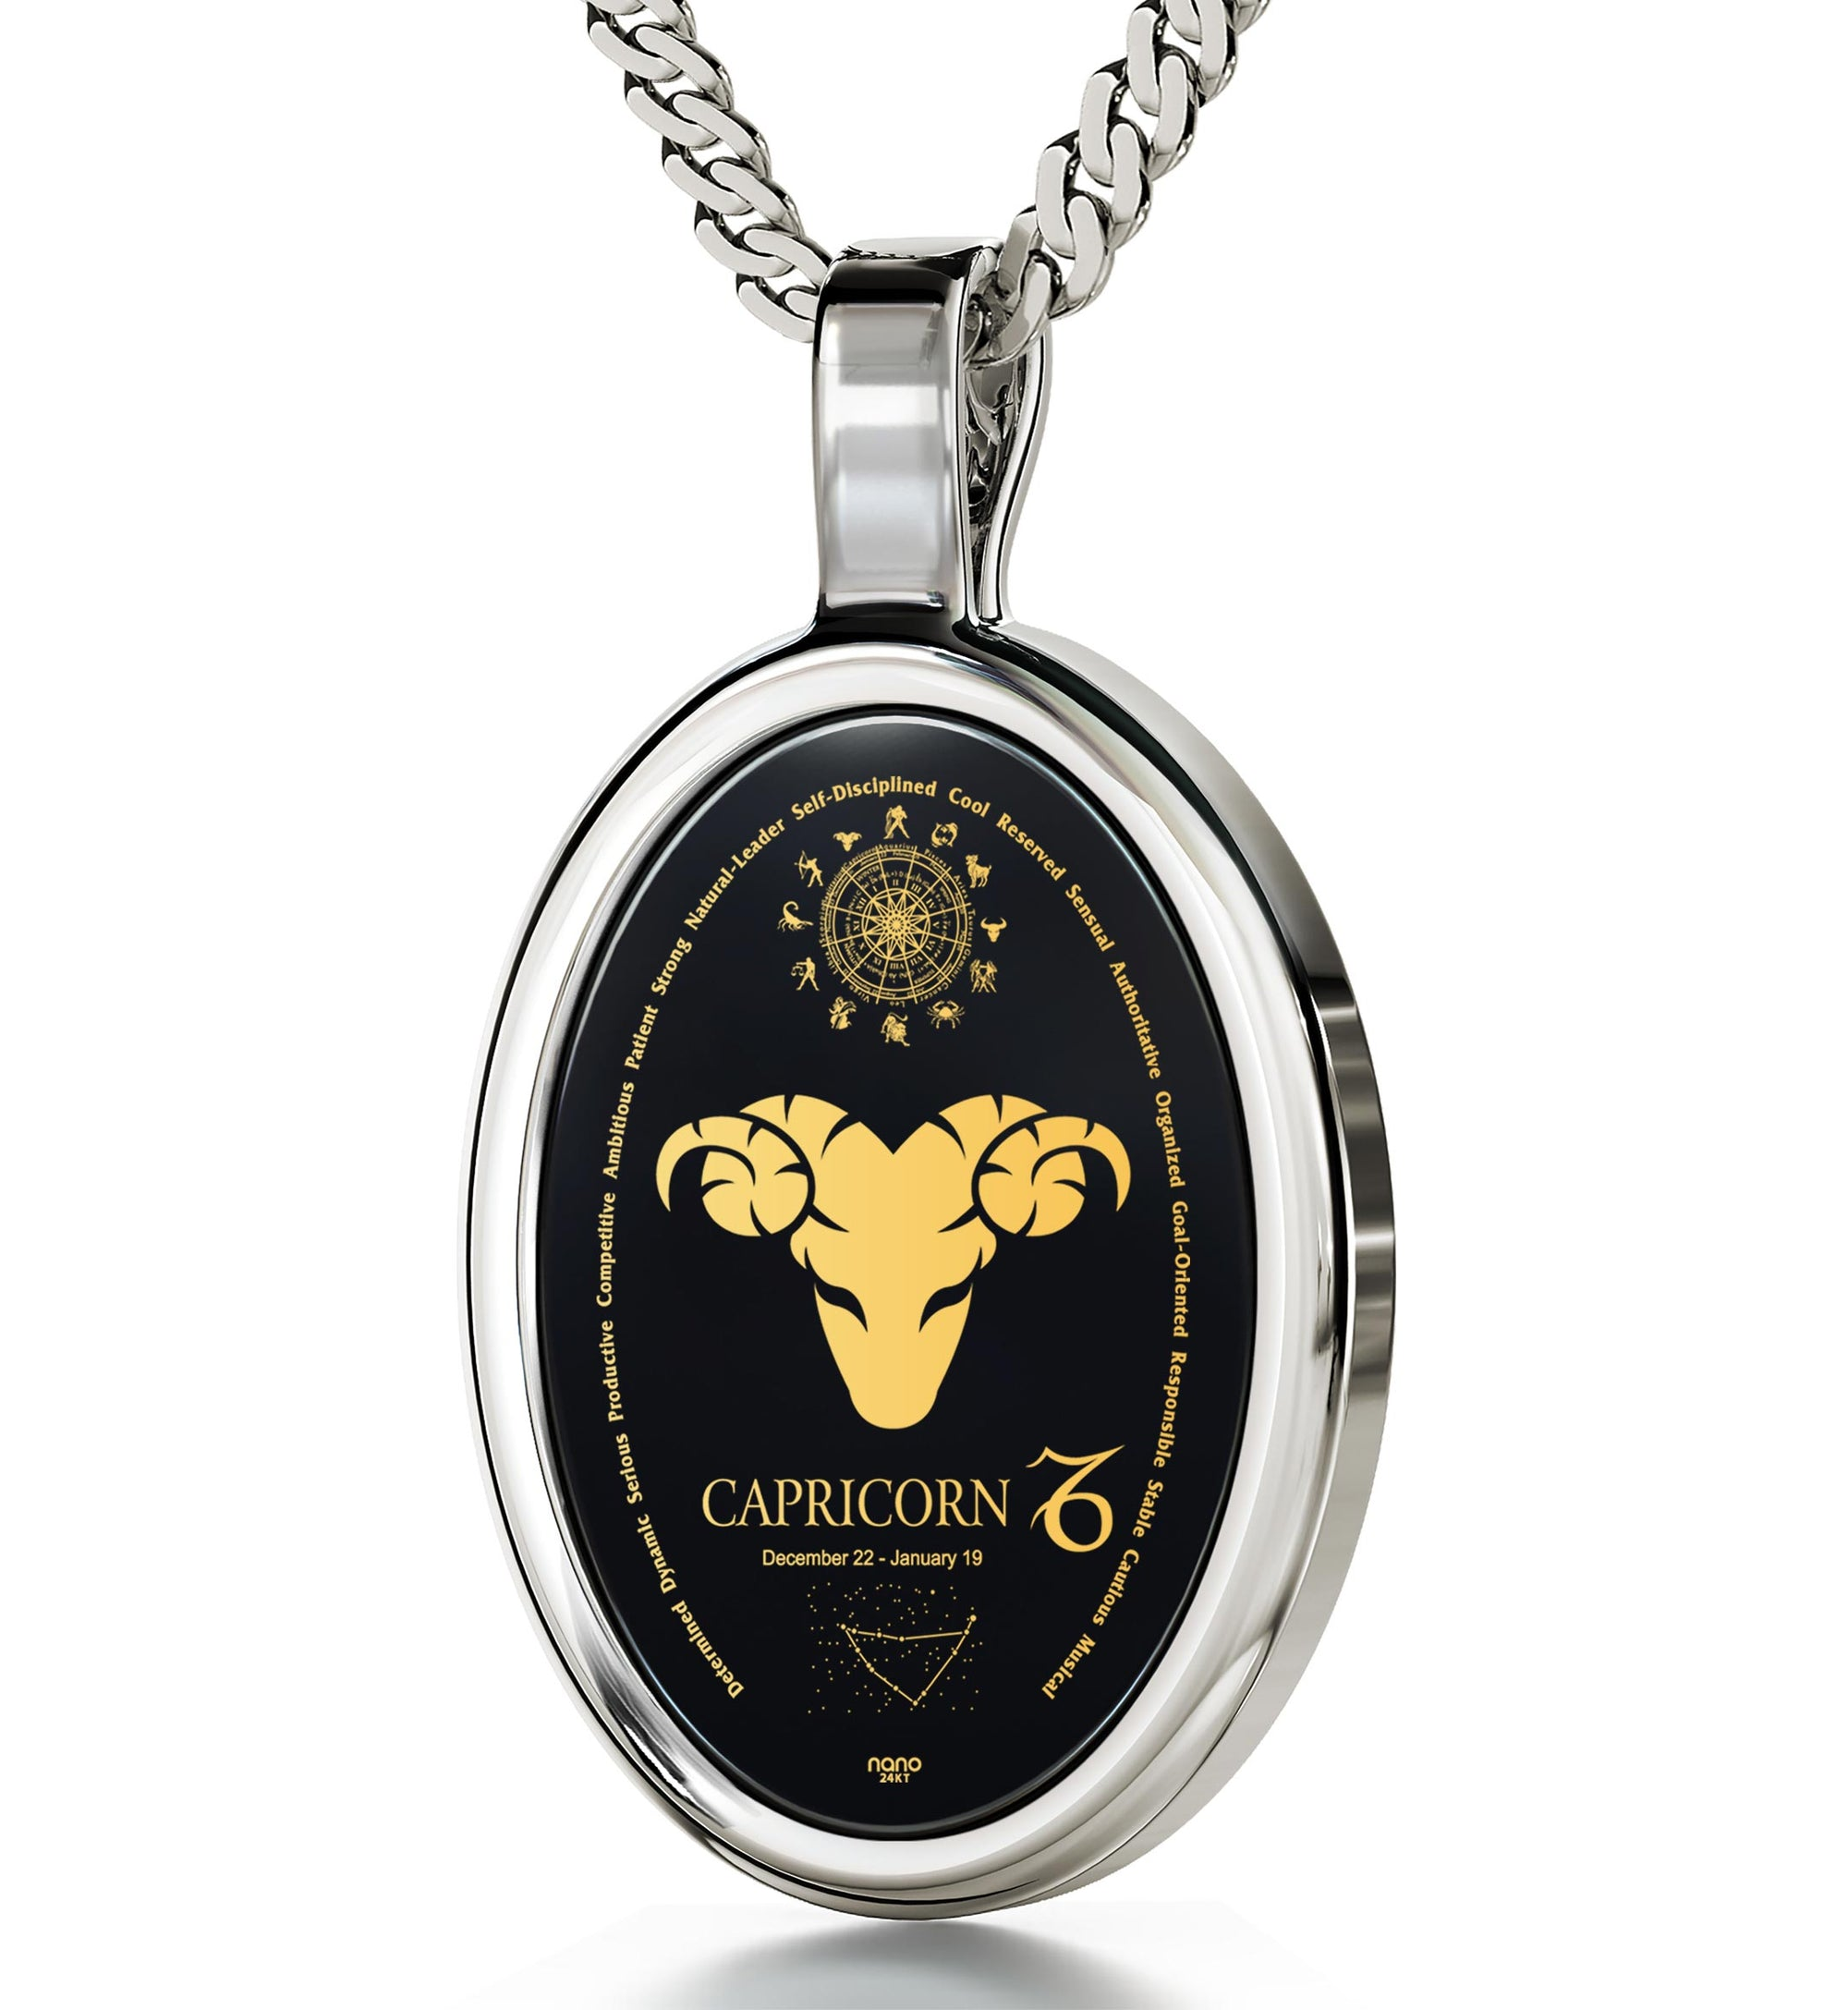 zodiac constellation astrology sign product il capricorn necklace pendant kofi jewelry